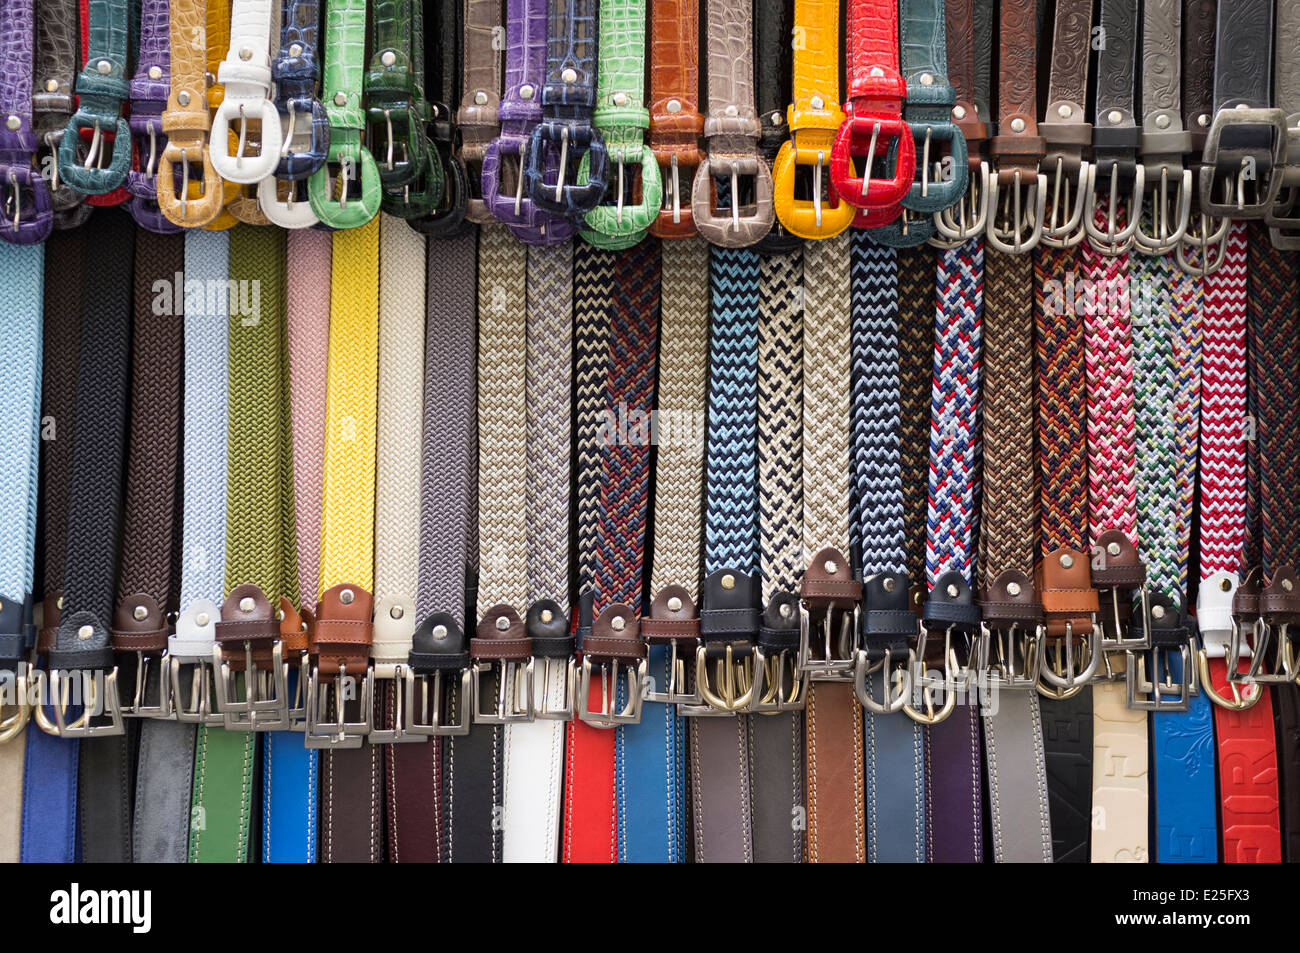 Belts on display outside a shop in Florence, Italy - Stock Image